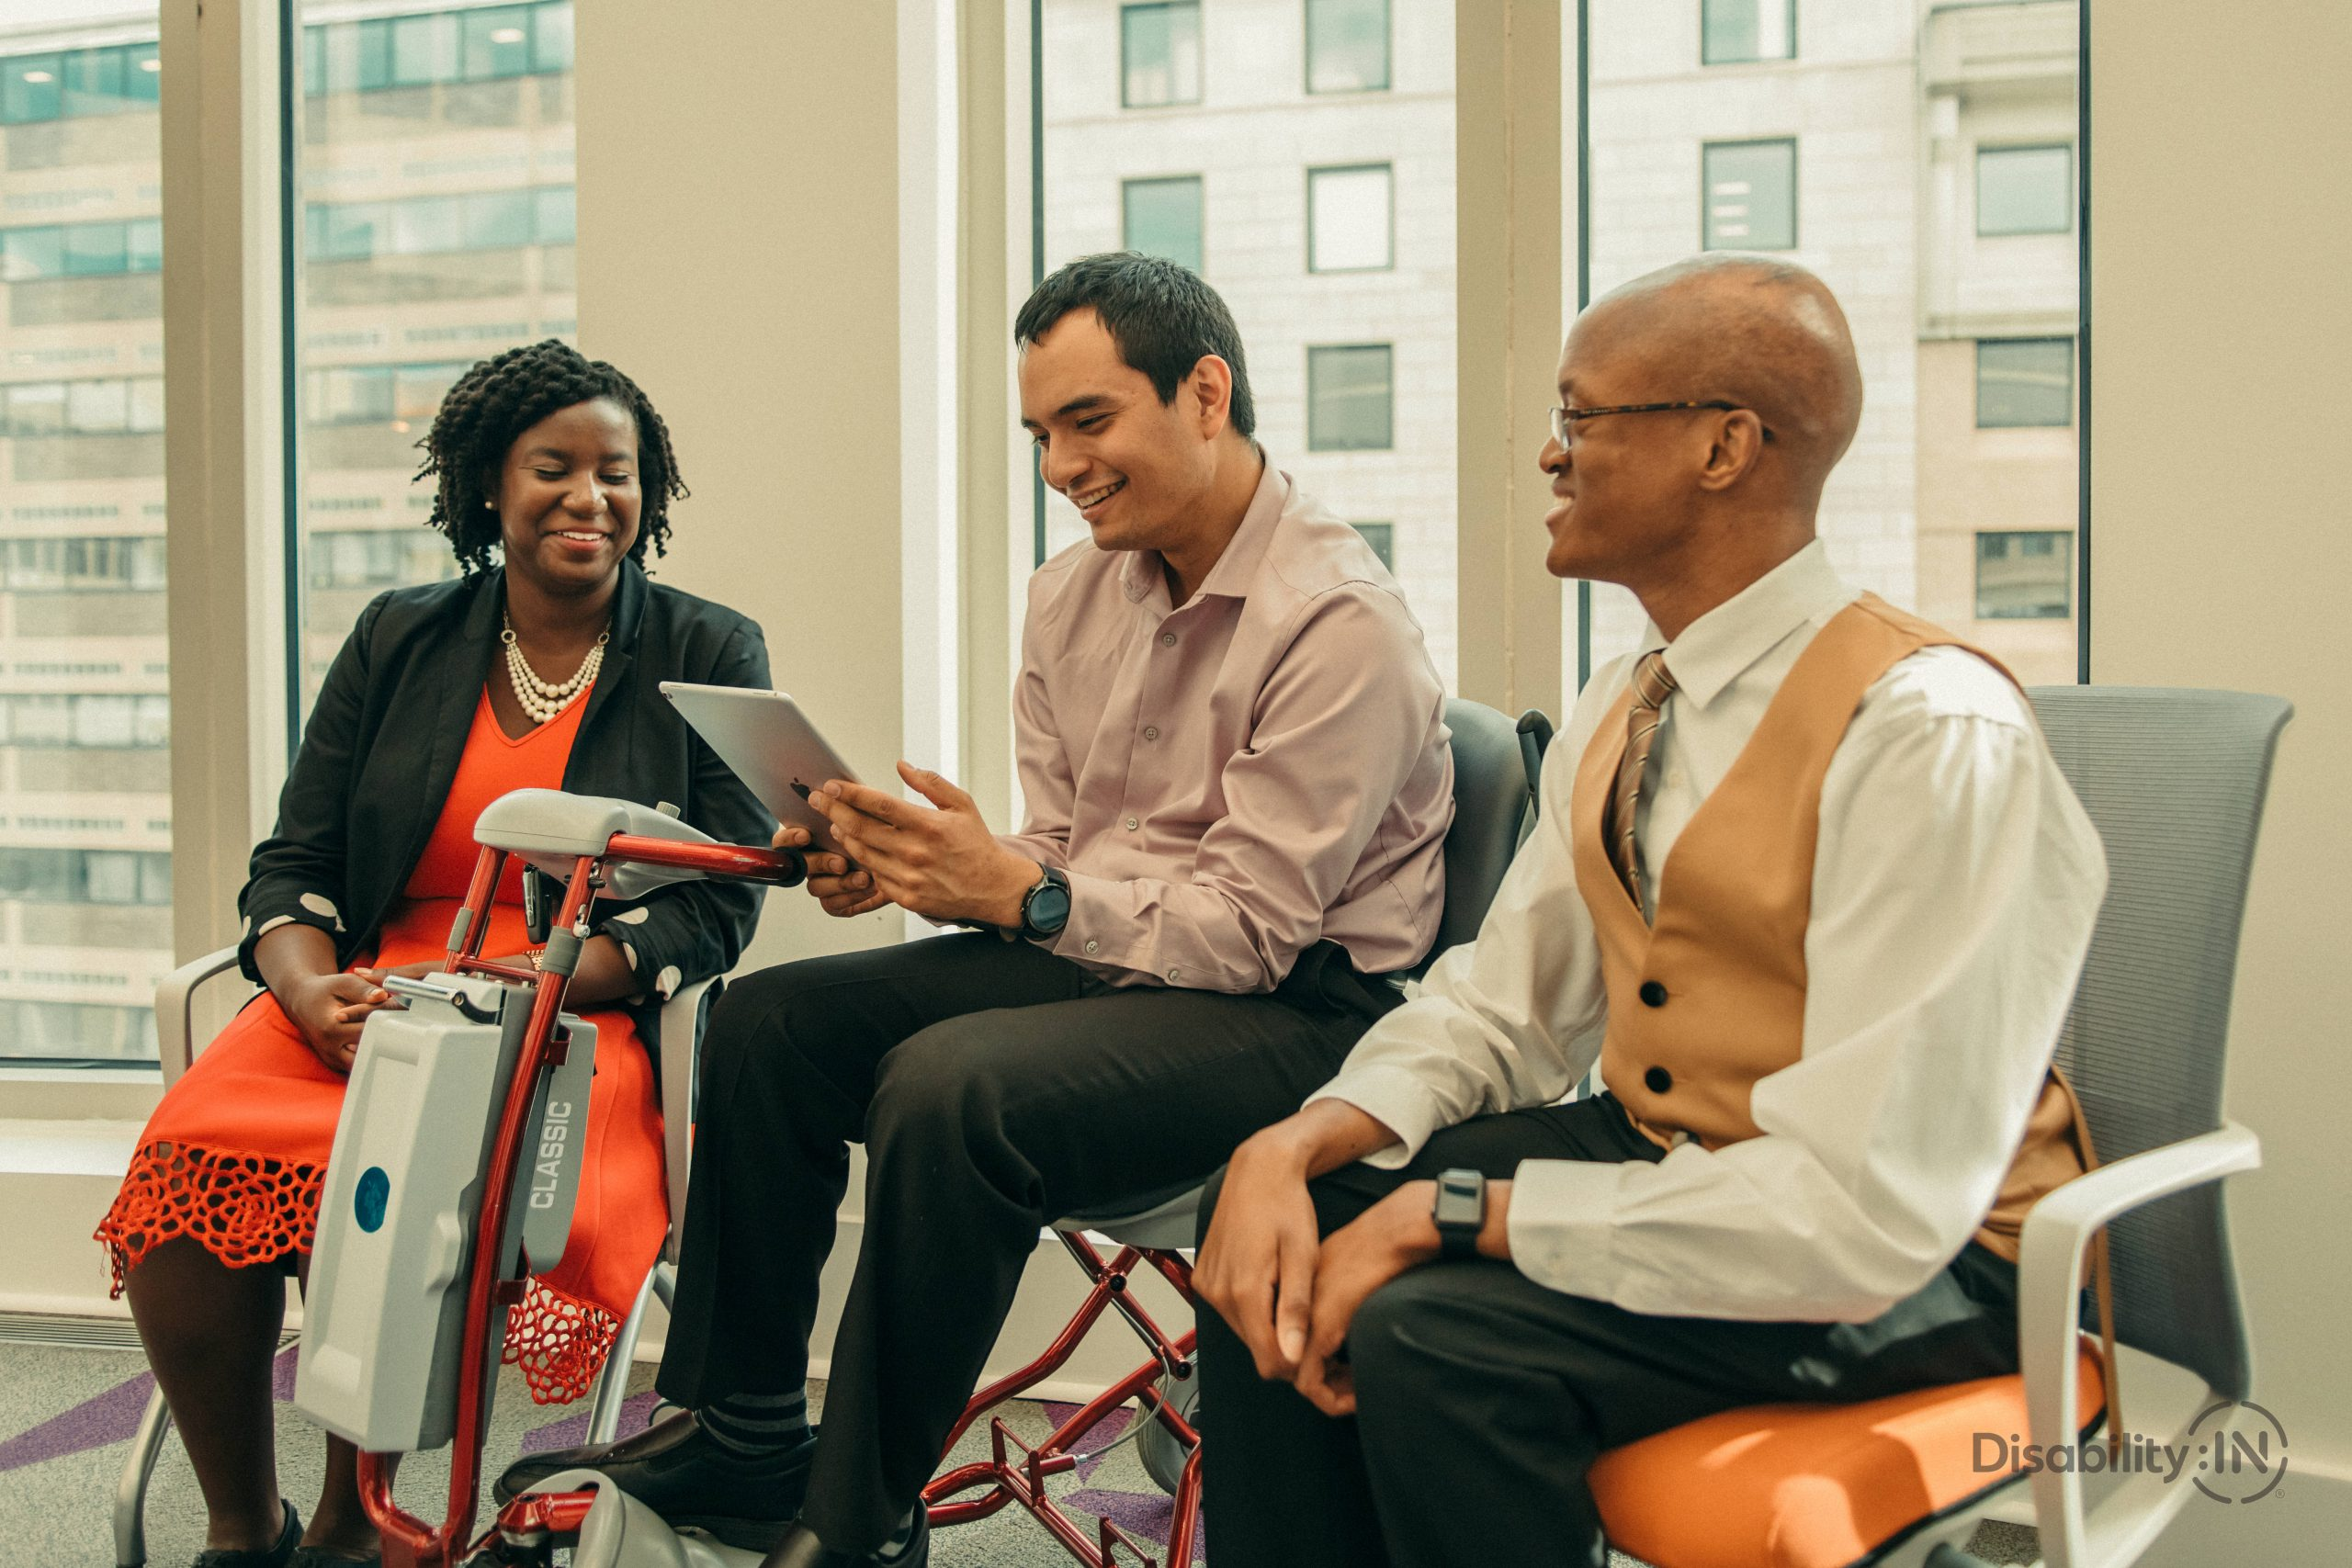 A group of 3 professionals gathered around a piece of assistive technology.